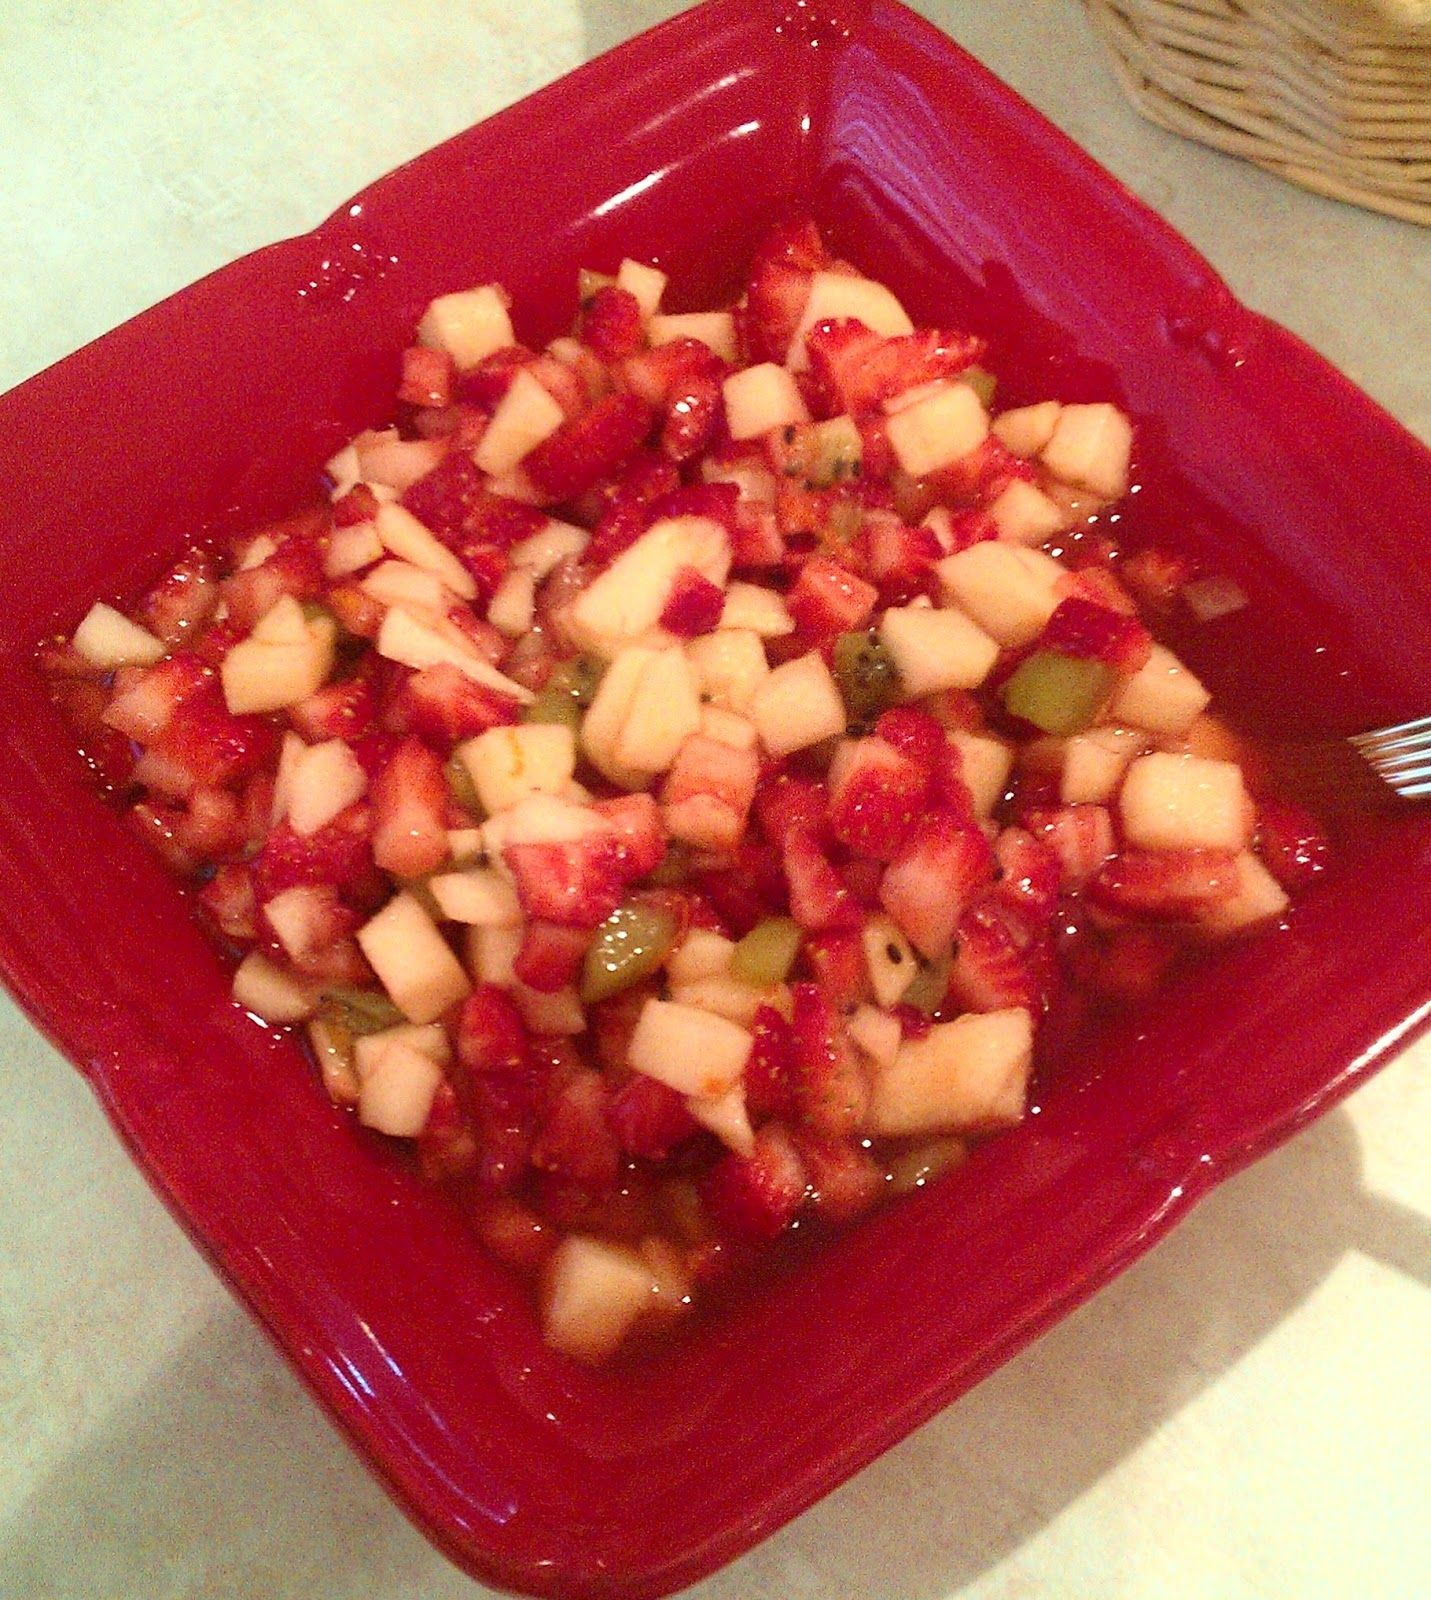 Our Family Table: Apple Berry Salsa